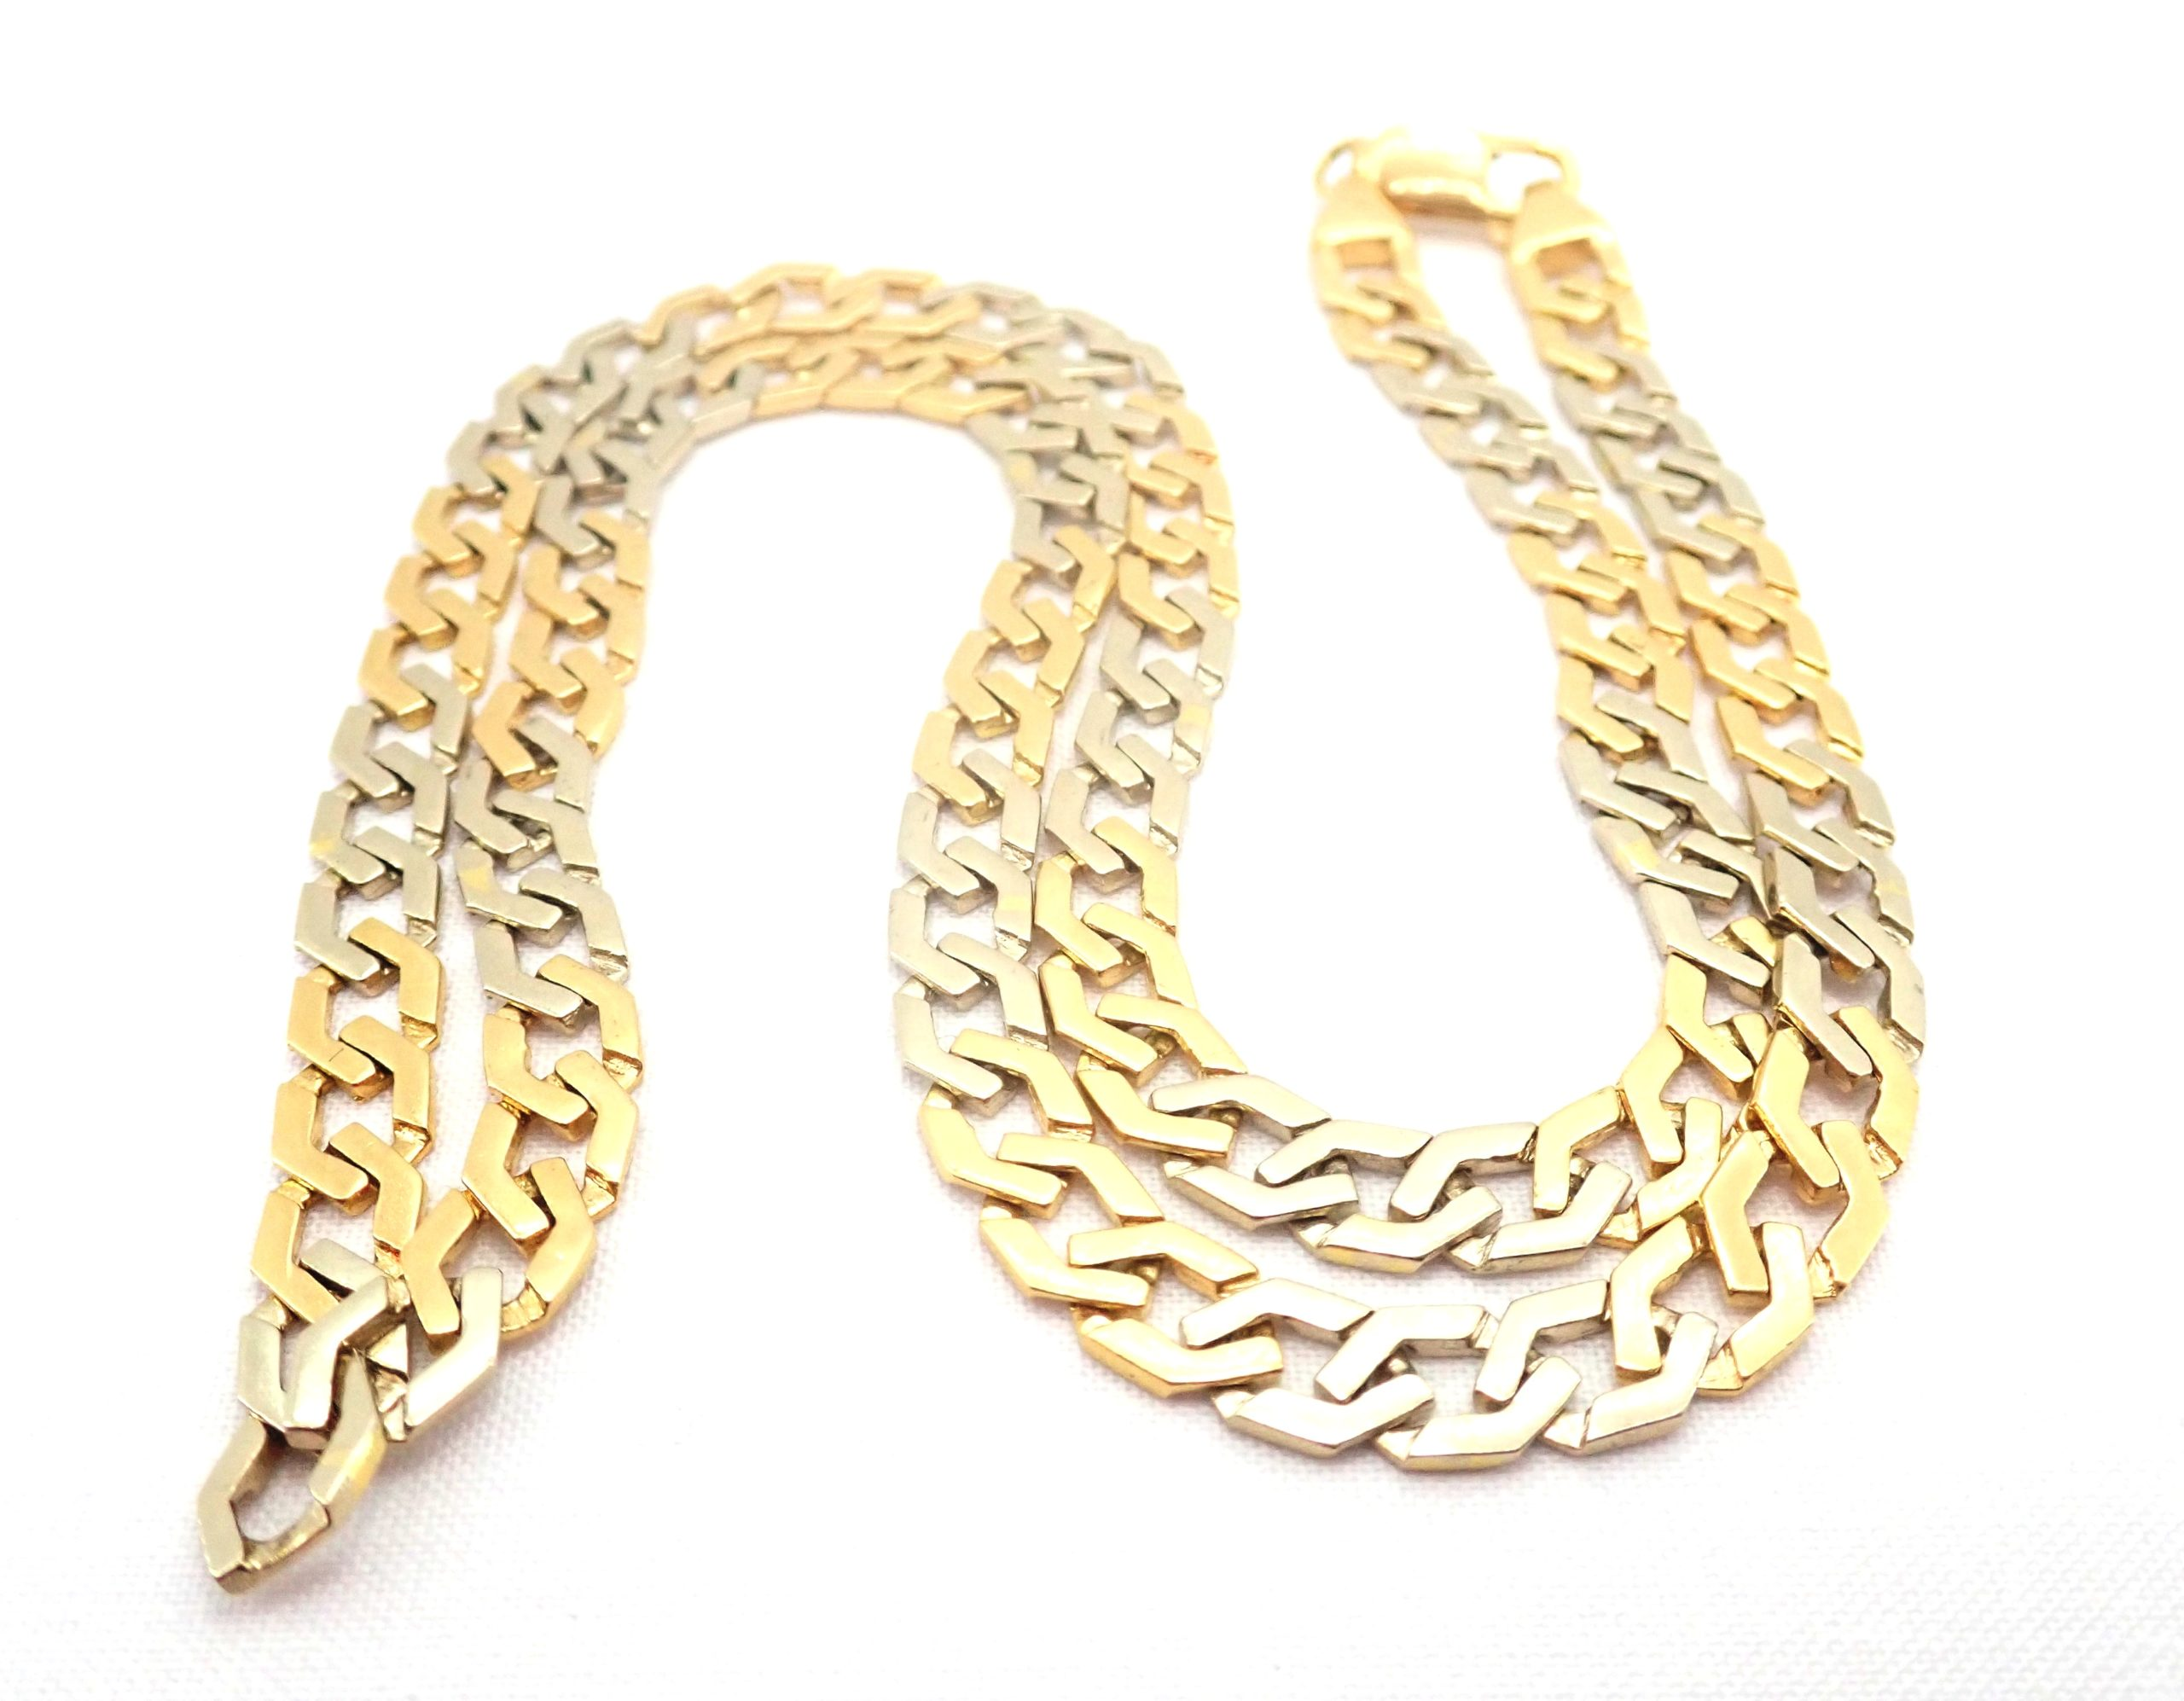 18ct Two Tone Gold Fancy Flat Linked Curb Chain Lobster Claw Clasp 20″ – 33.3 gms #5311